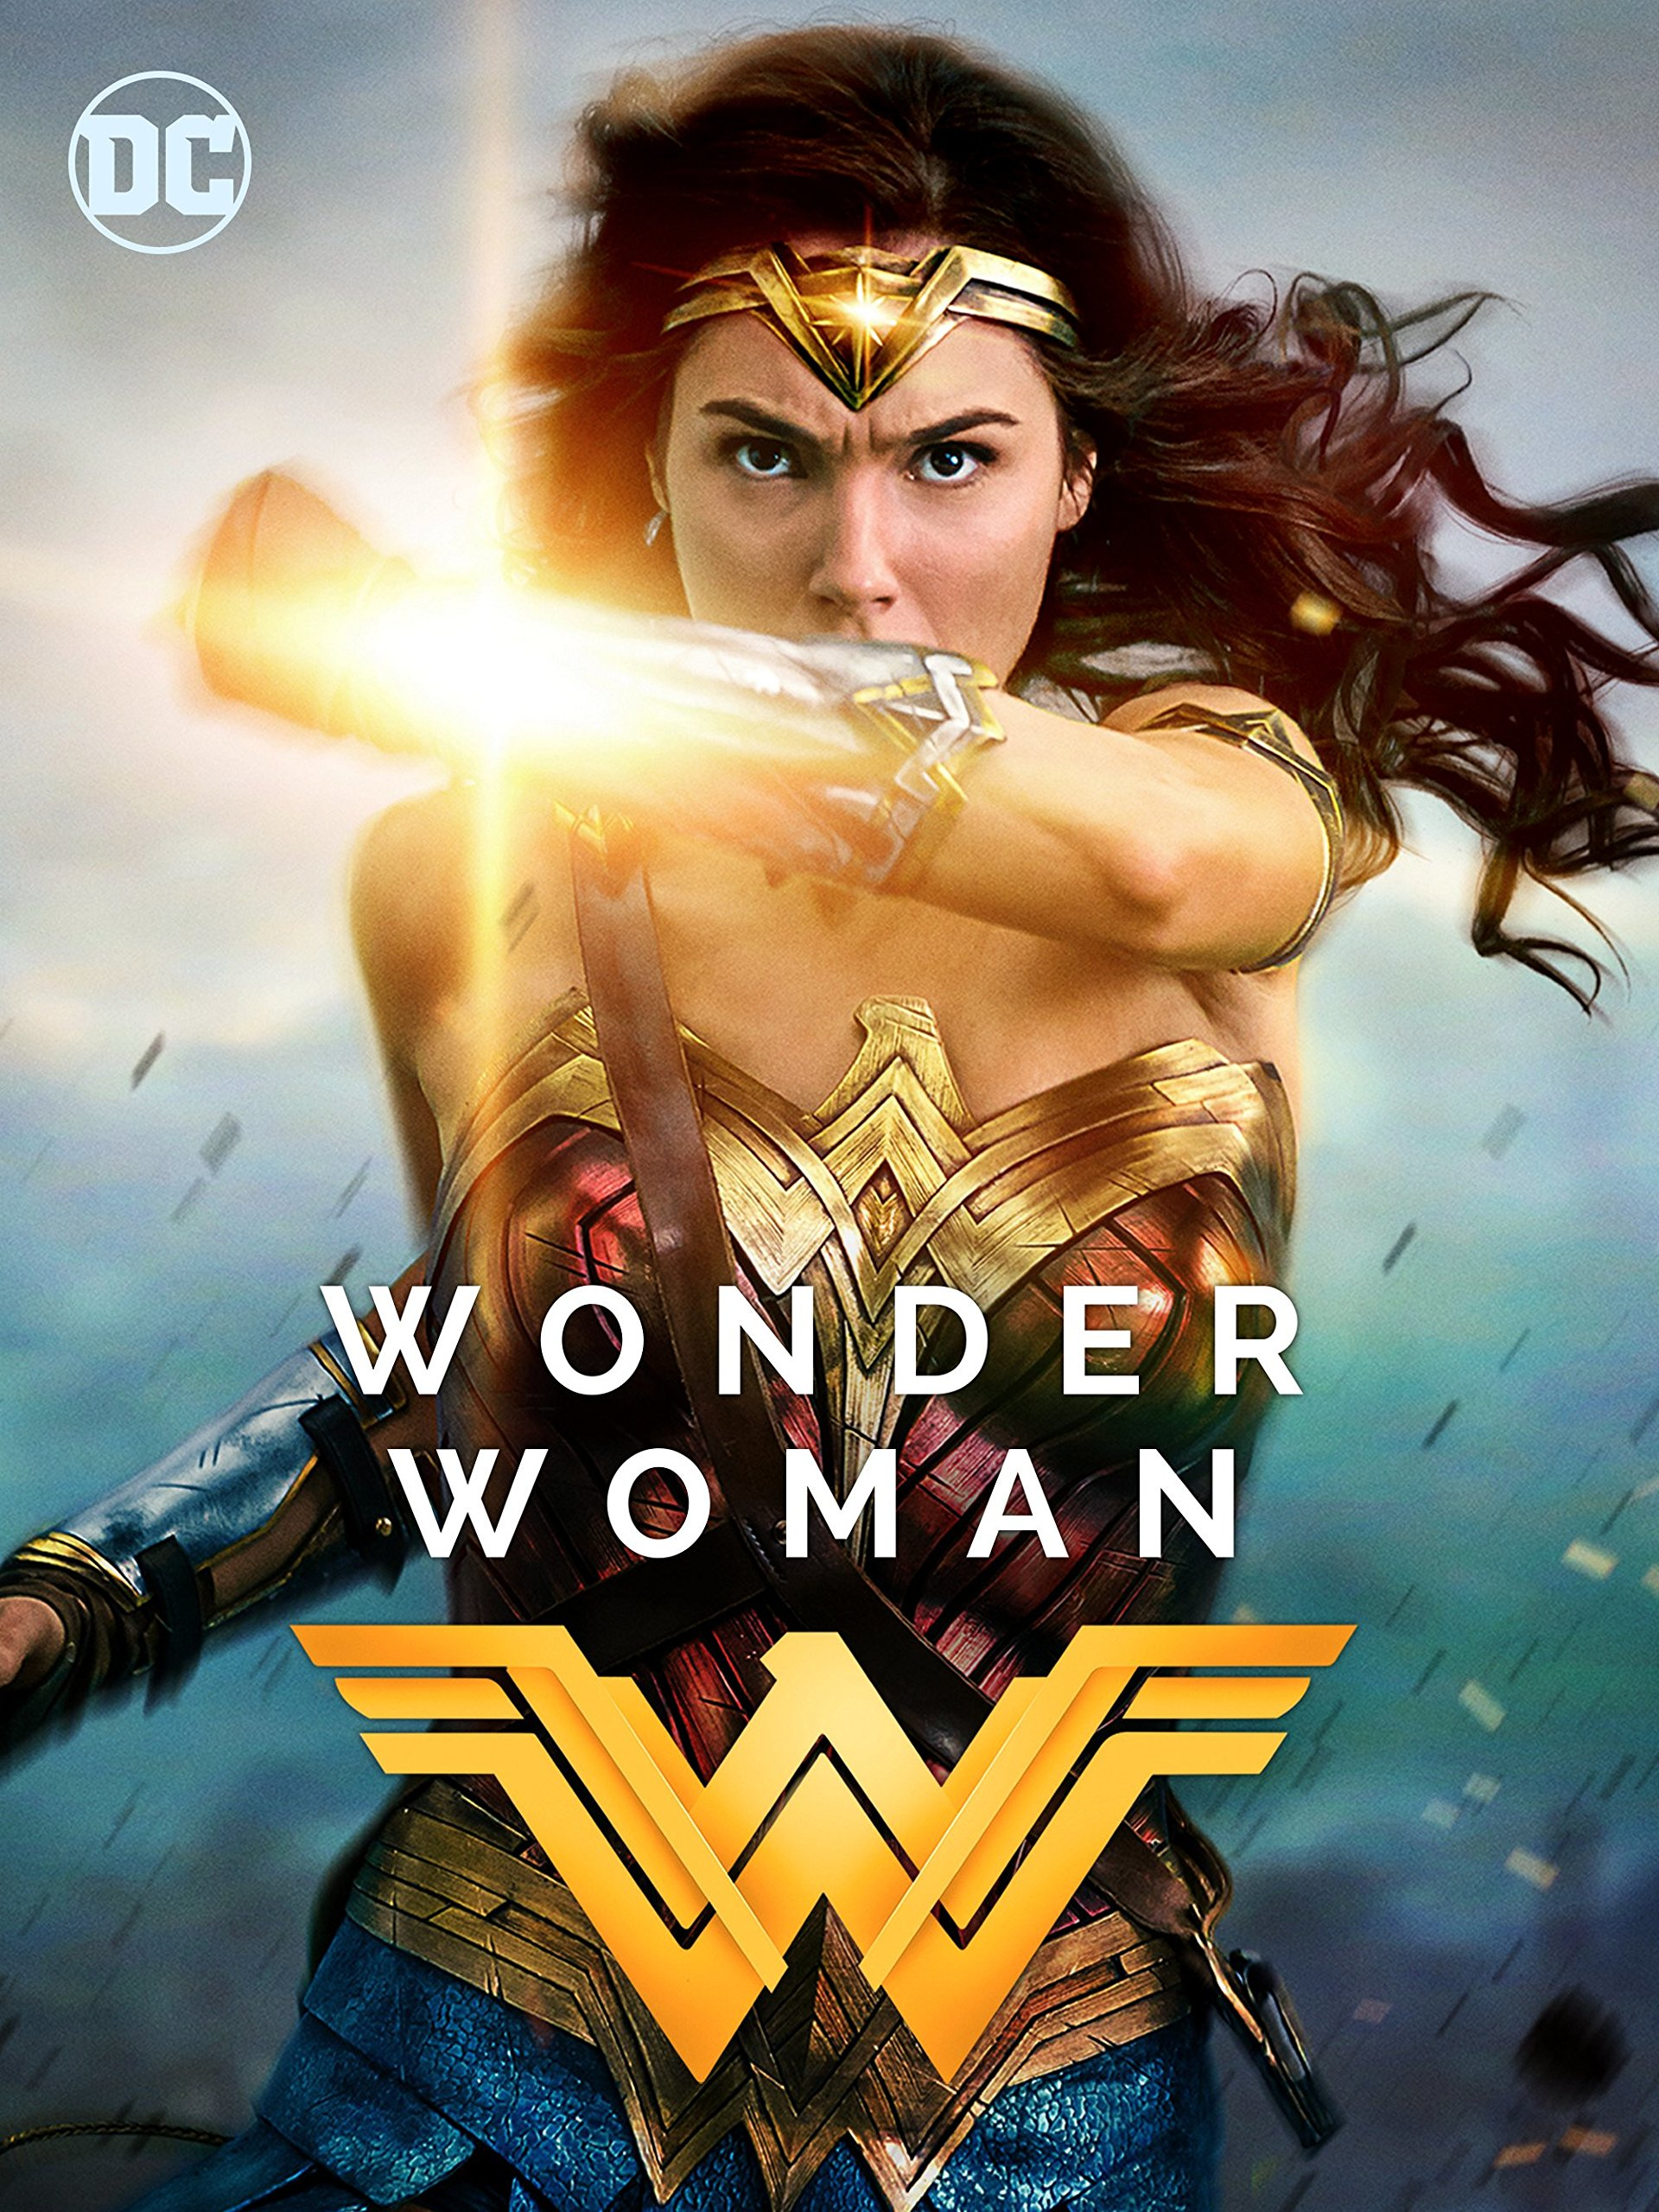 Wonder Woman - Saturday 20 January - Cinema in the CemeteryWonder Woman (M)A pilot crashes near a hidden, isolated island populated by warriors. After learning of conflict in the outside world a novice Amazonian warrior leaves home to fight a war, learning about herself and her powers along the way. Enjoy this 2017 blockbuster film outdoors on the big screen.